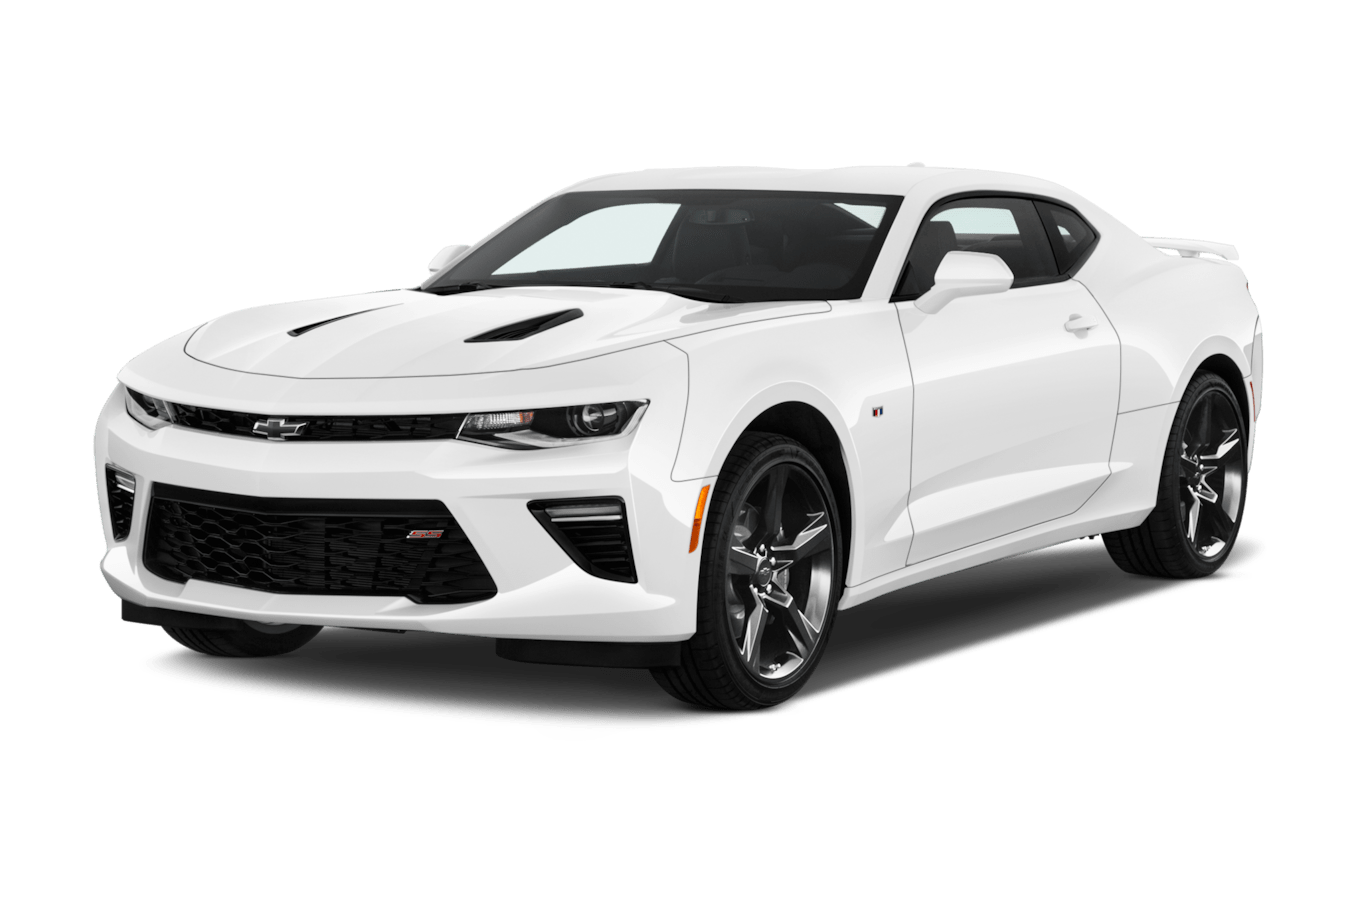 Dodge Muscle Car Wallpapers 2016 Chevrolet Camaro Reviews And Rating Motor Trend Canada